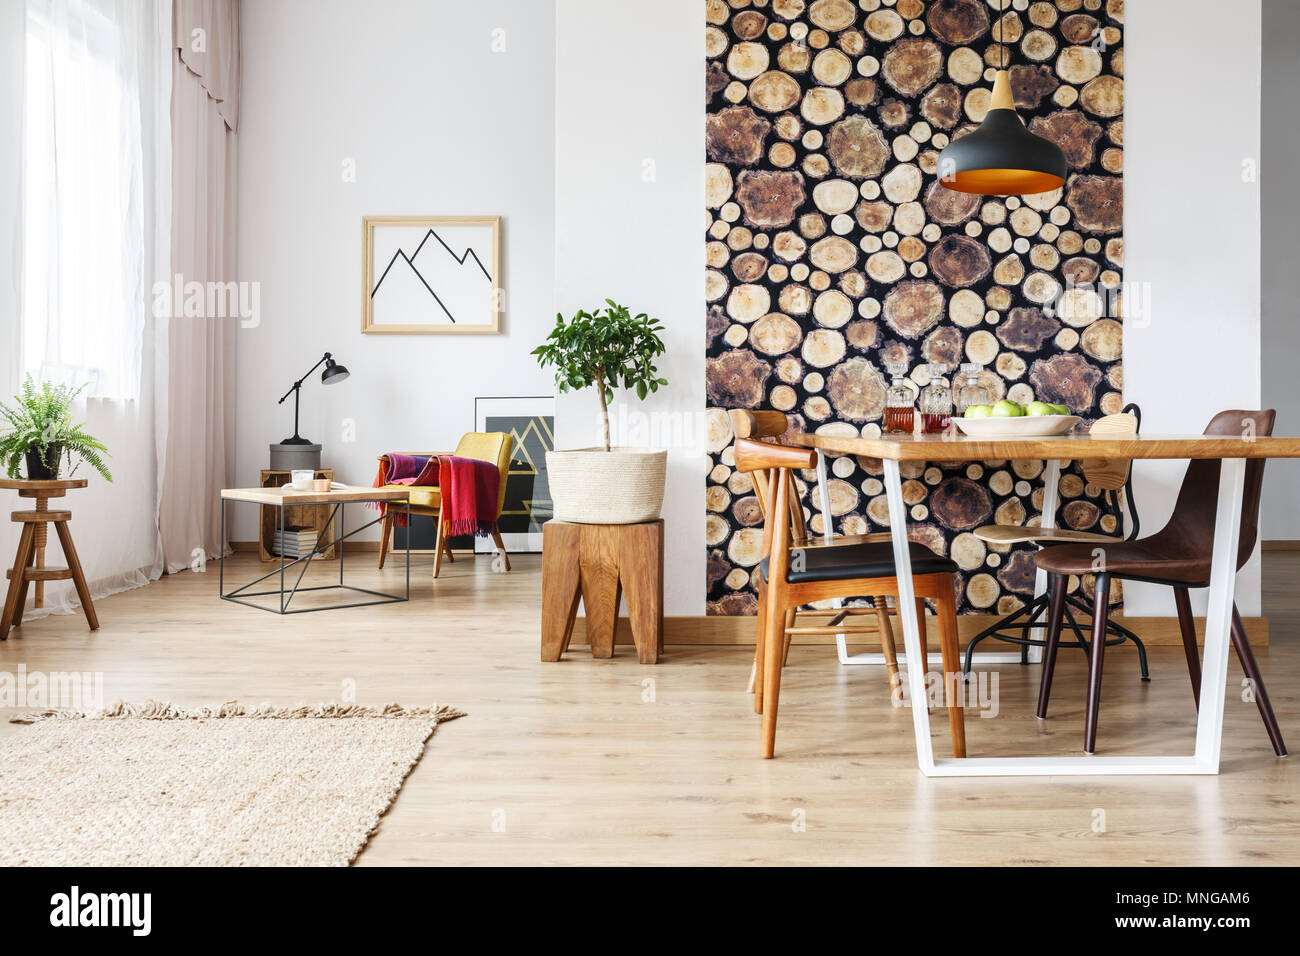 Dining table and rustic brown chairs in contemporary spacious flat with wooden accents - Stock Image